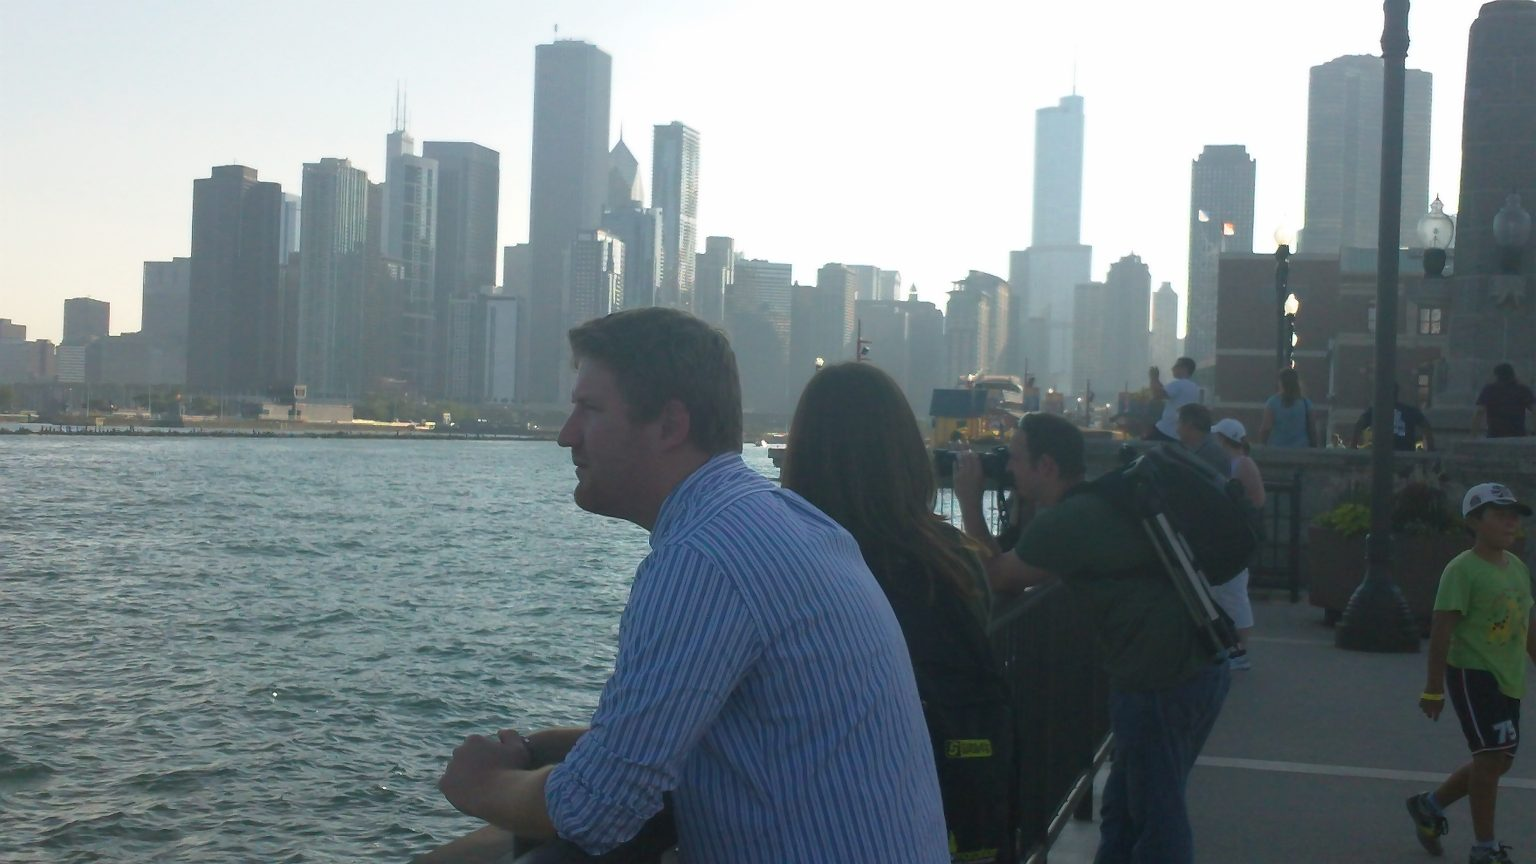 Jared and Sam in the foreground, with the harbour and city partially in shadow behind them